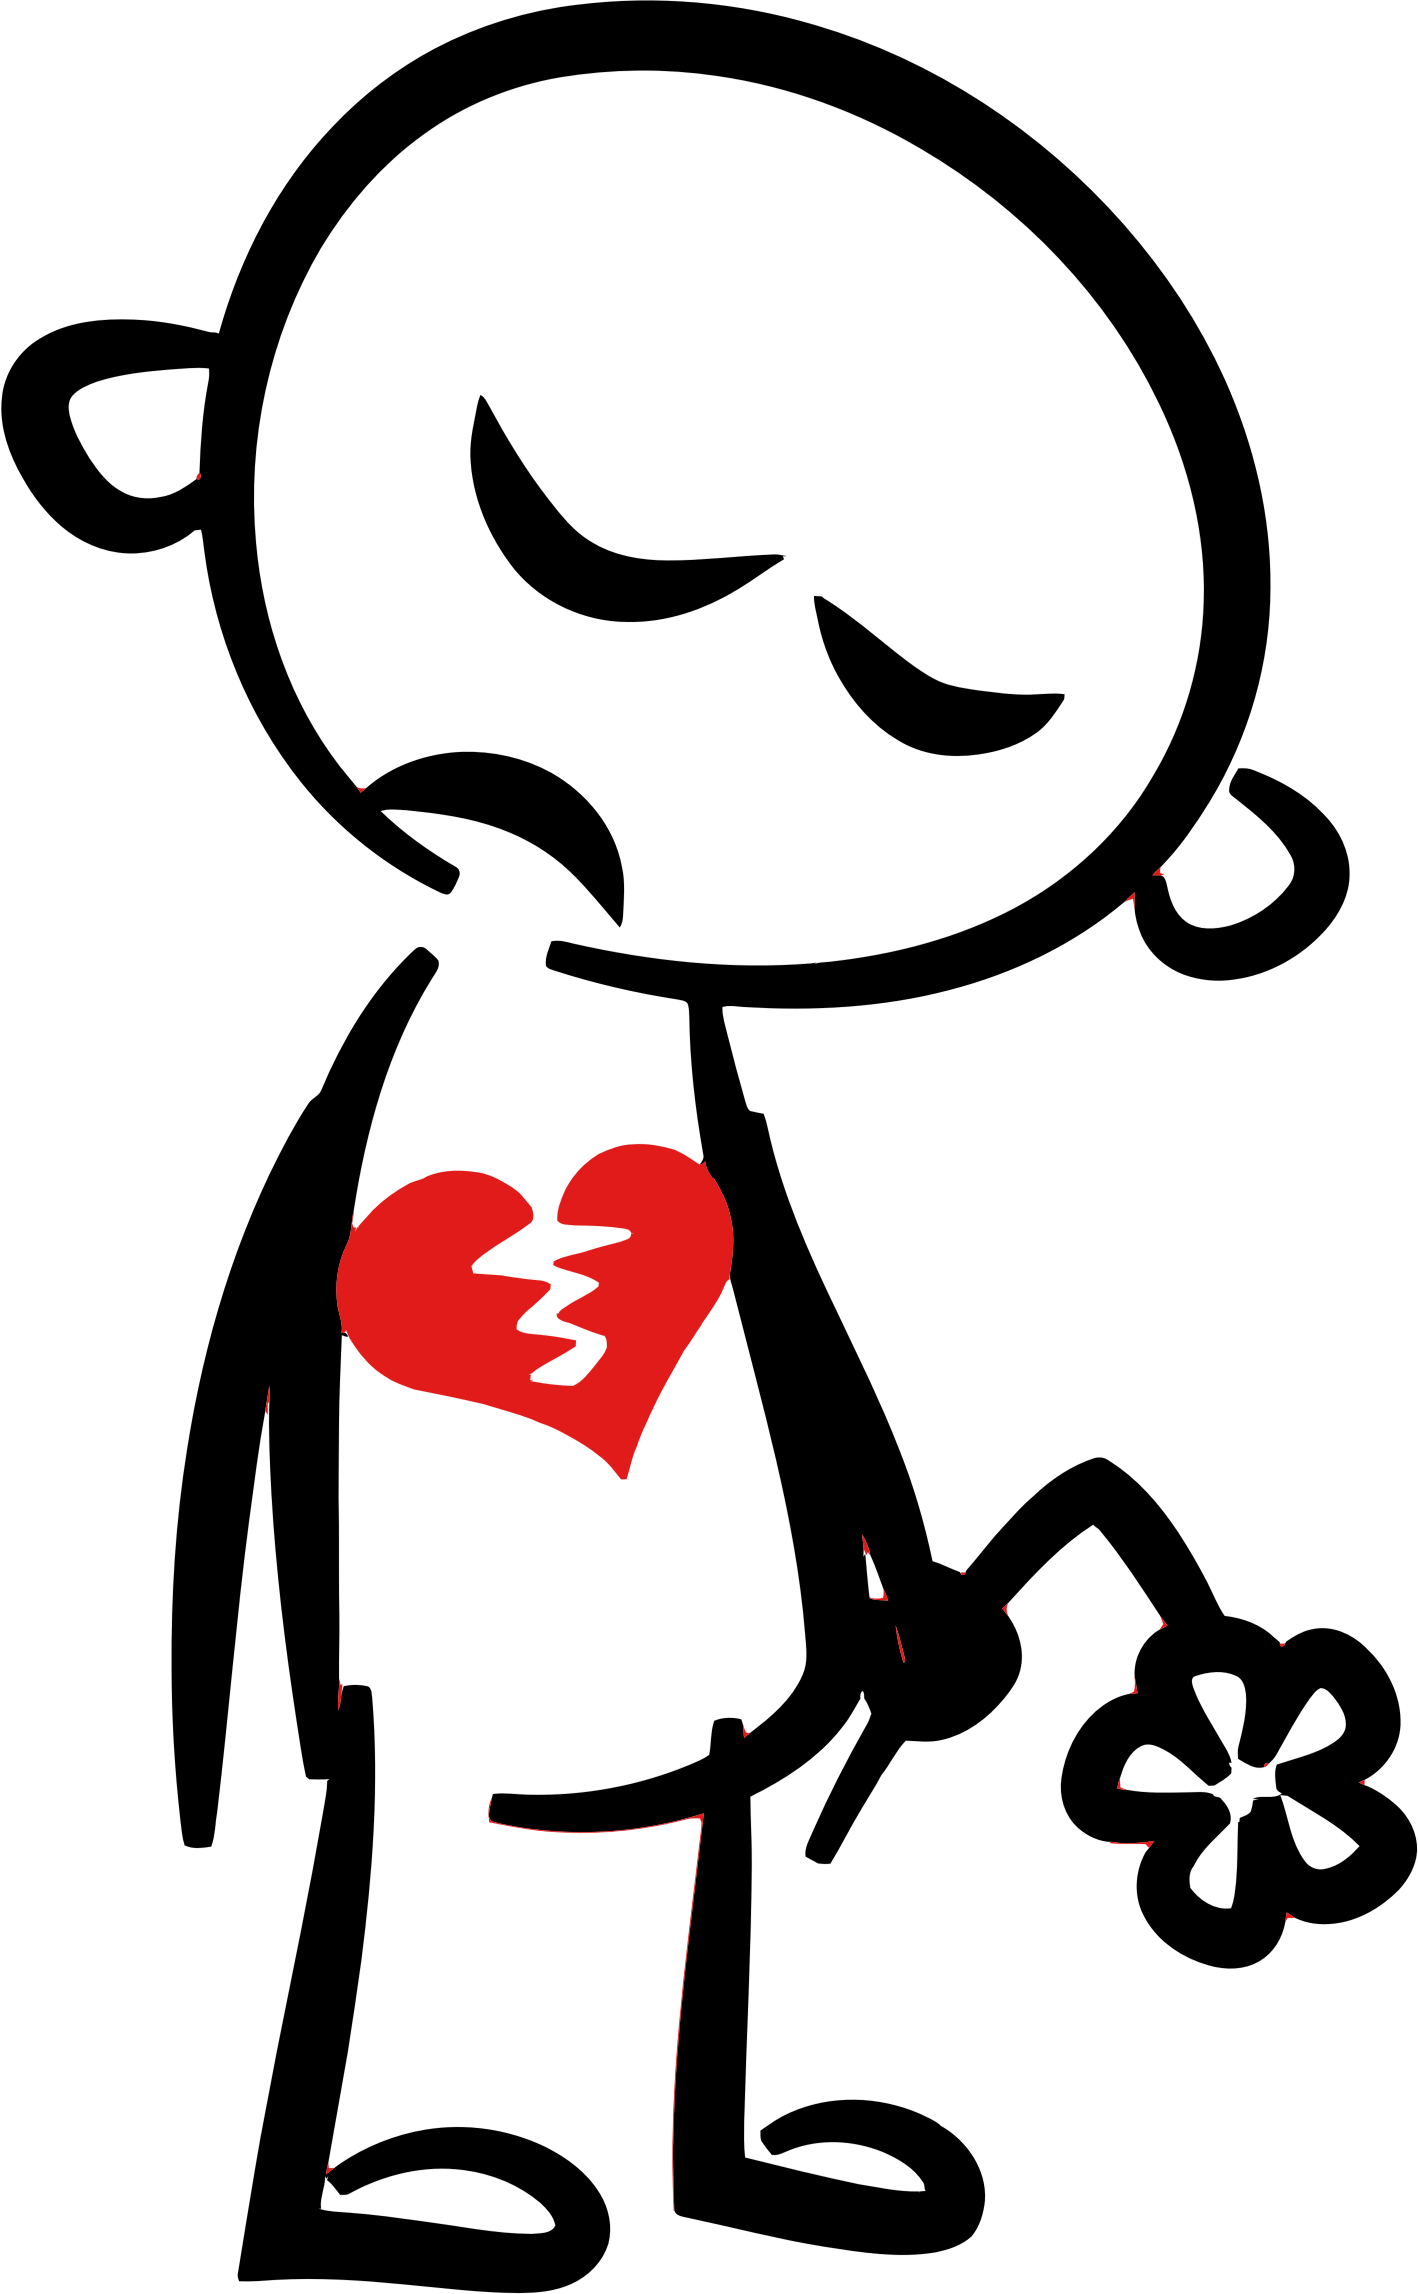 Broken heart images illustrations. Einstein clipart abstract